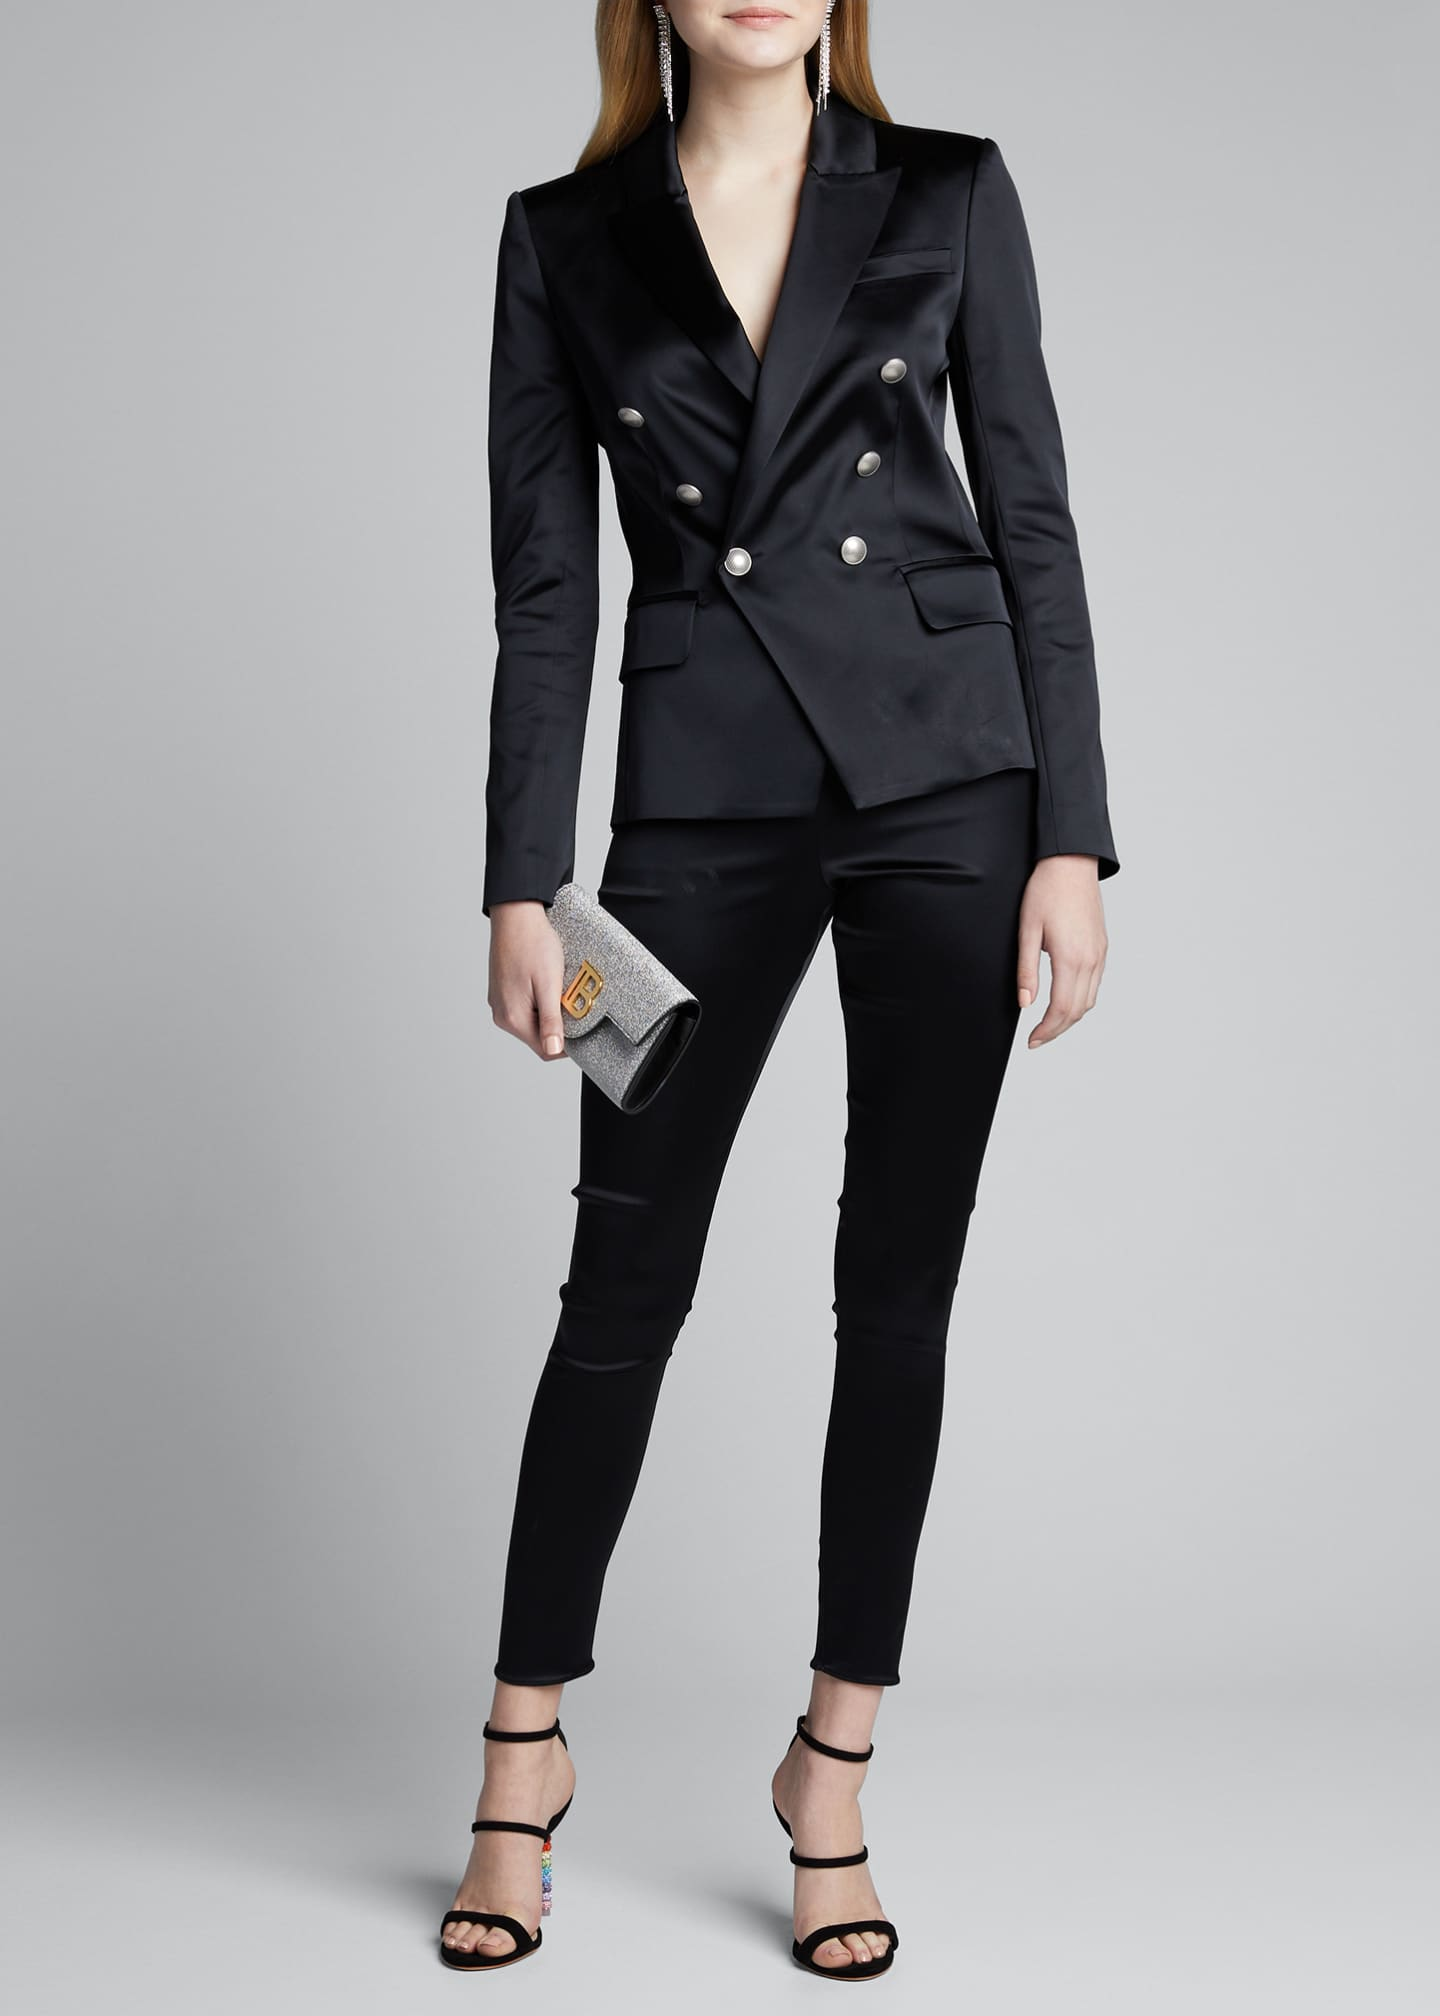 L'Agence Kenzie Double-Breasted Satin Blazer